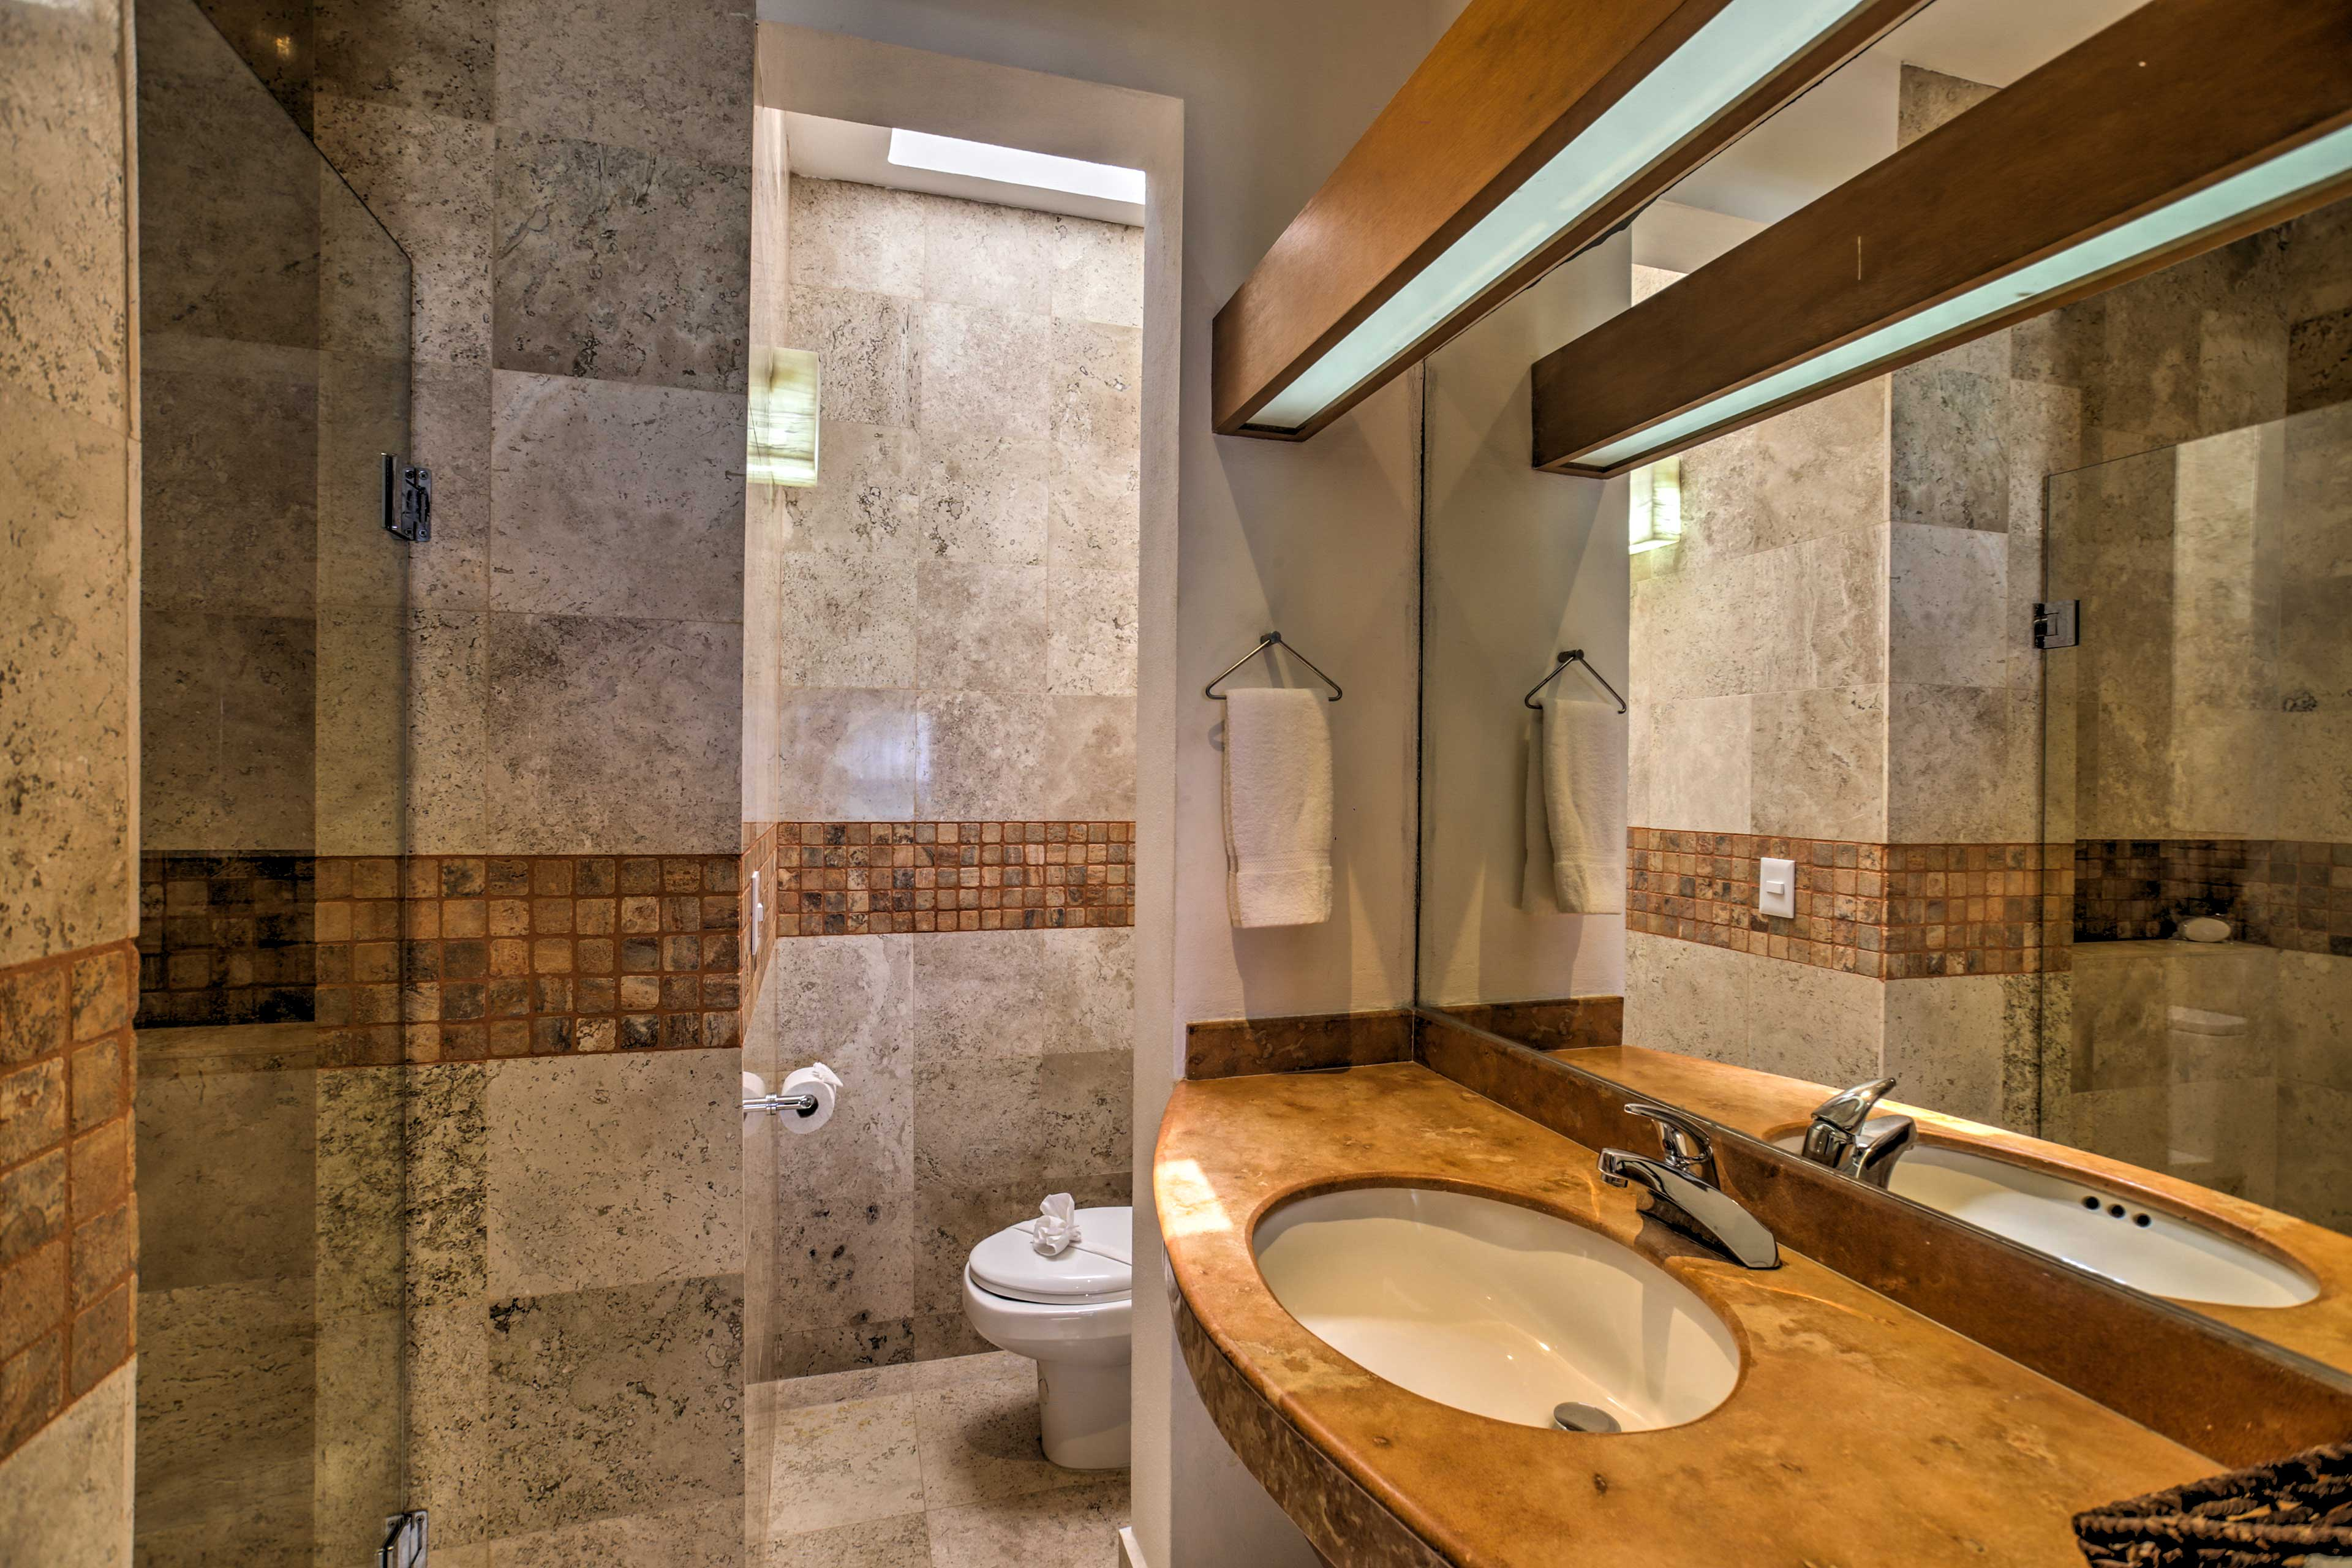 Each bathroom is a bit more beautiful than the last.